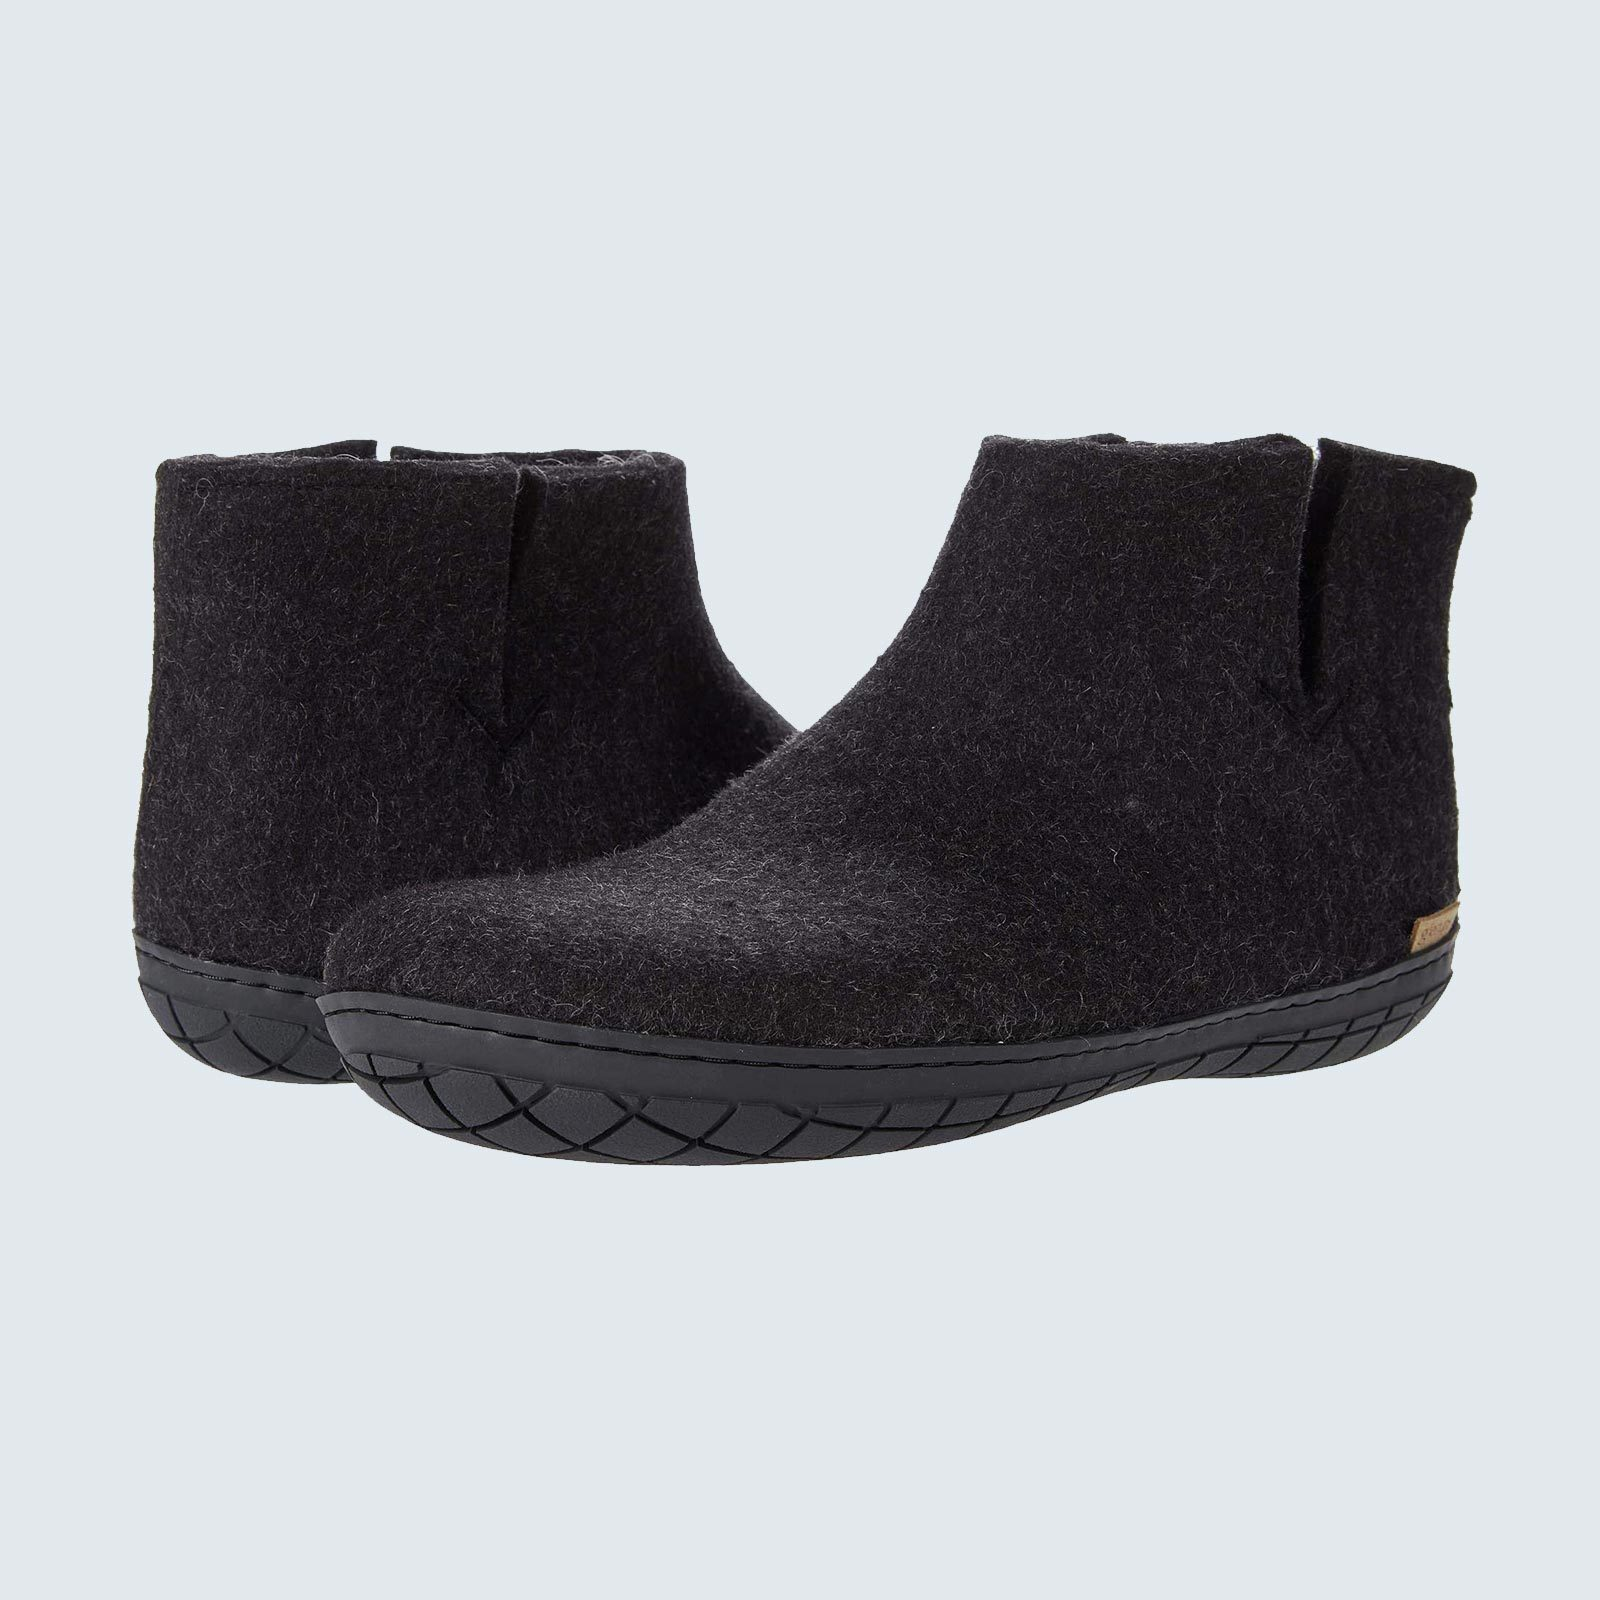 Best boot-style slippers: Glerups Wool Boot